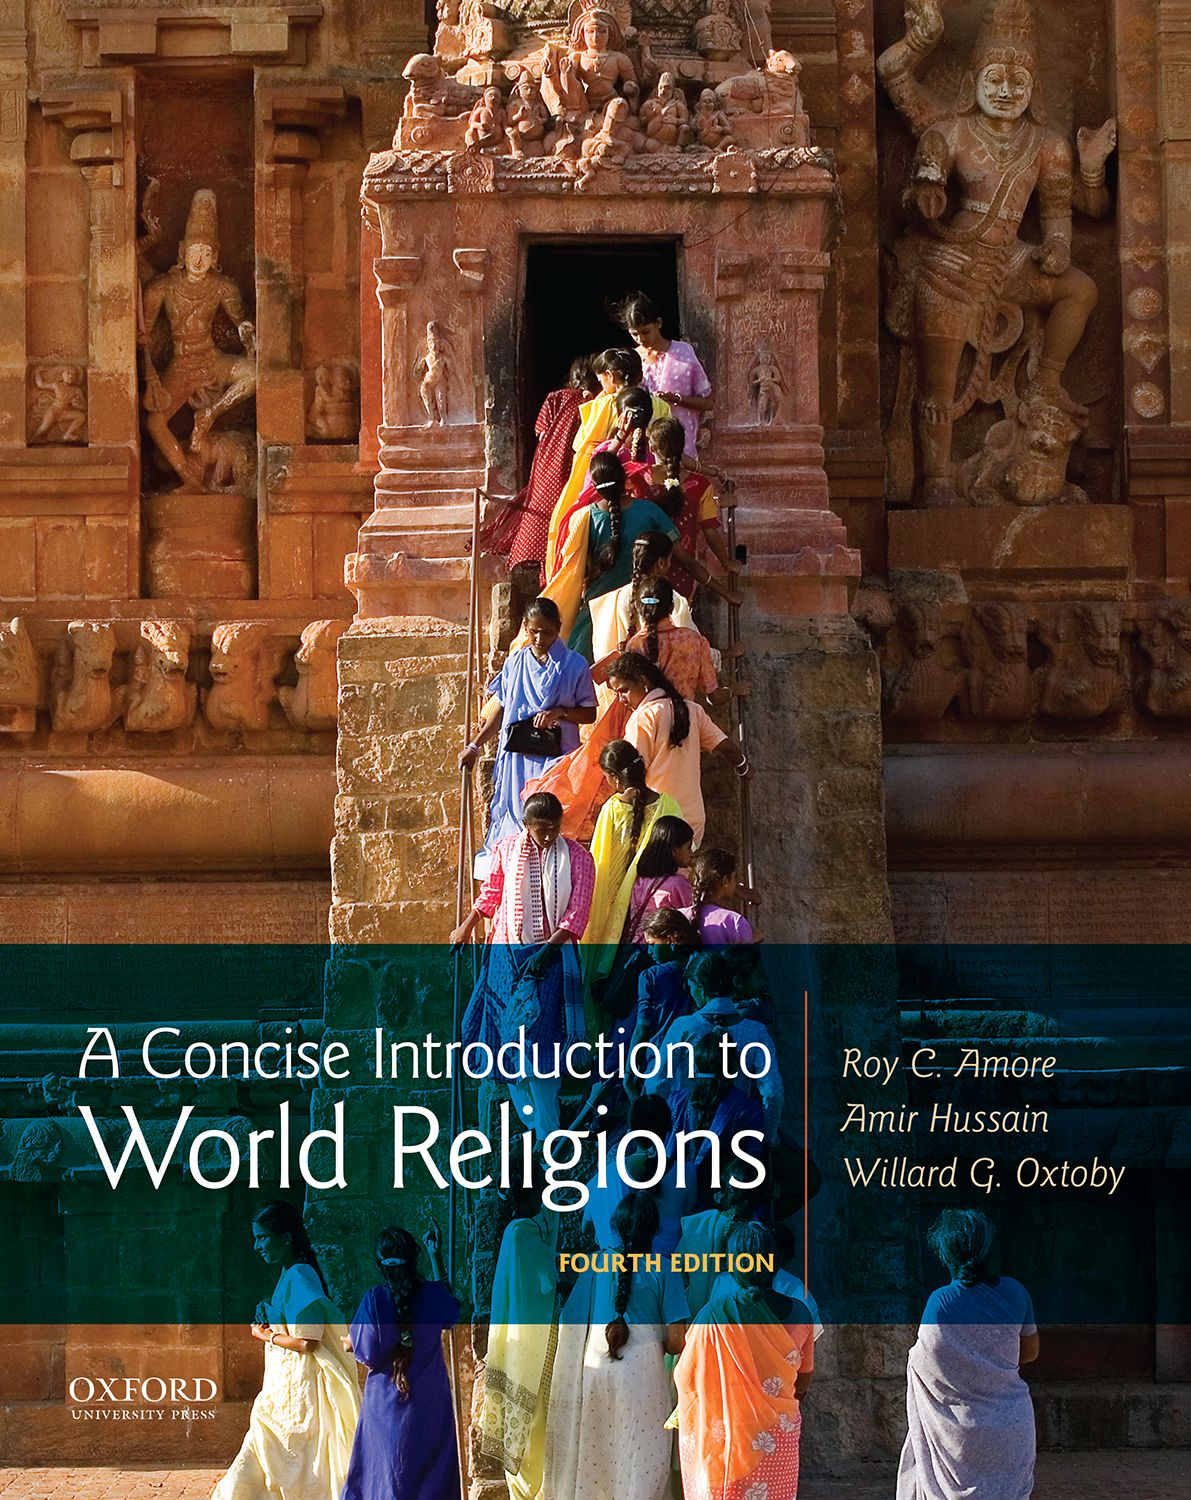 A Concise Introduction to World Religions 4e	Instructor Resources